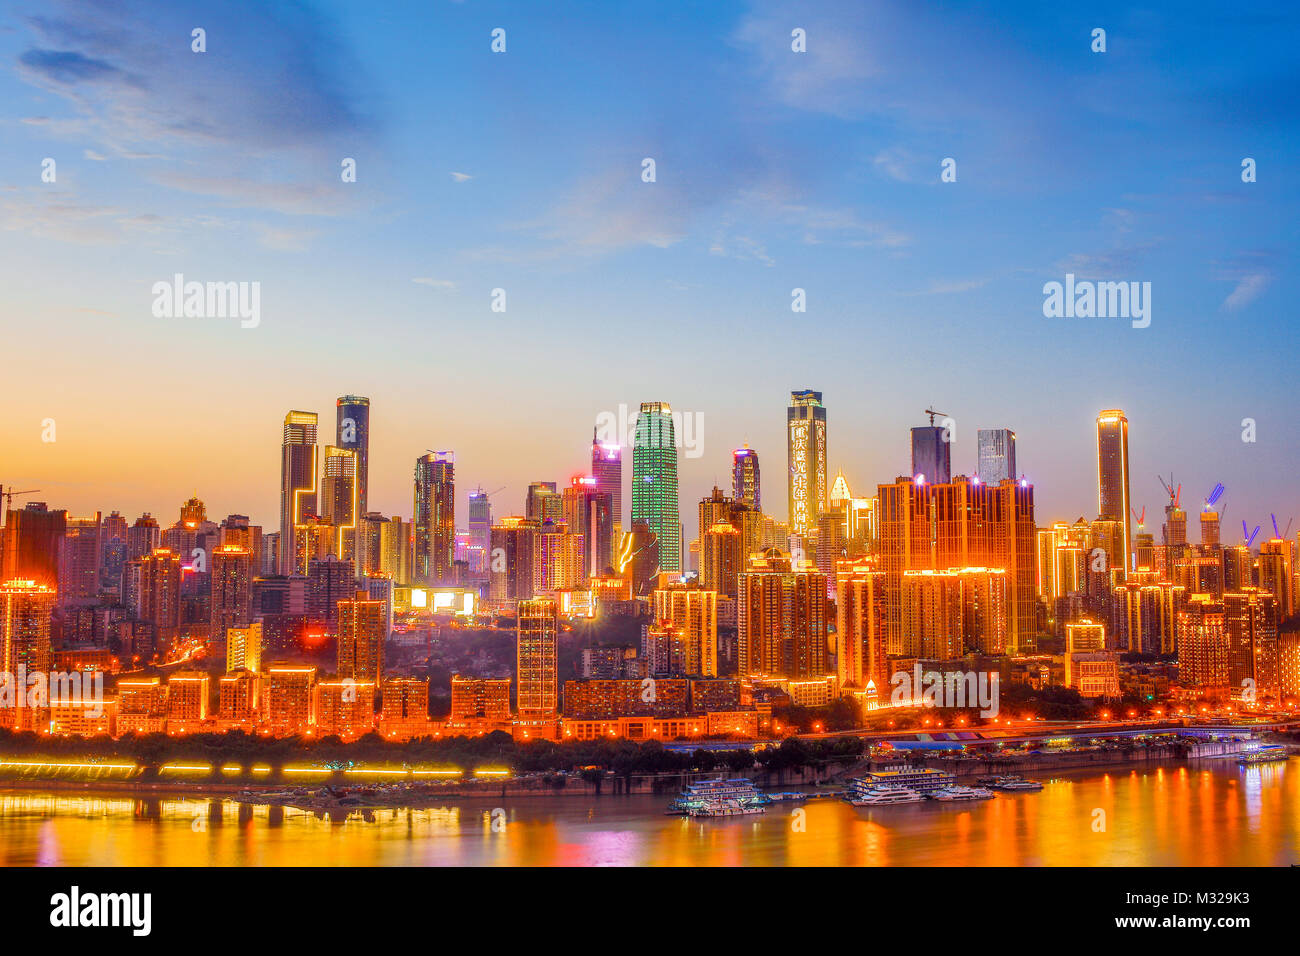 Night view of urban architecture in Chongqing - Stock Image